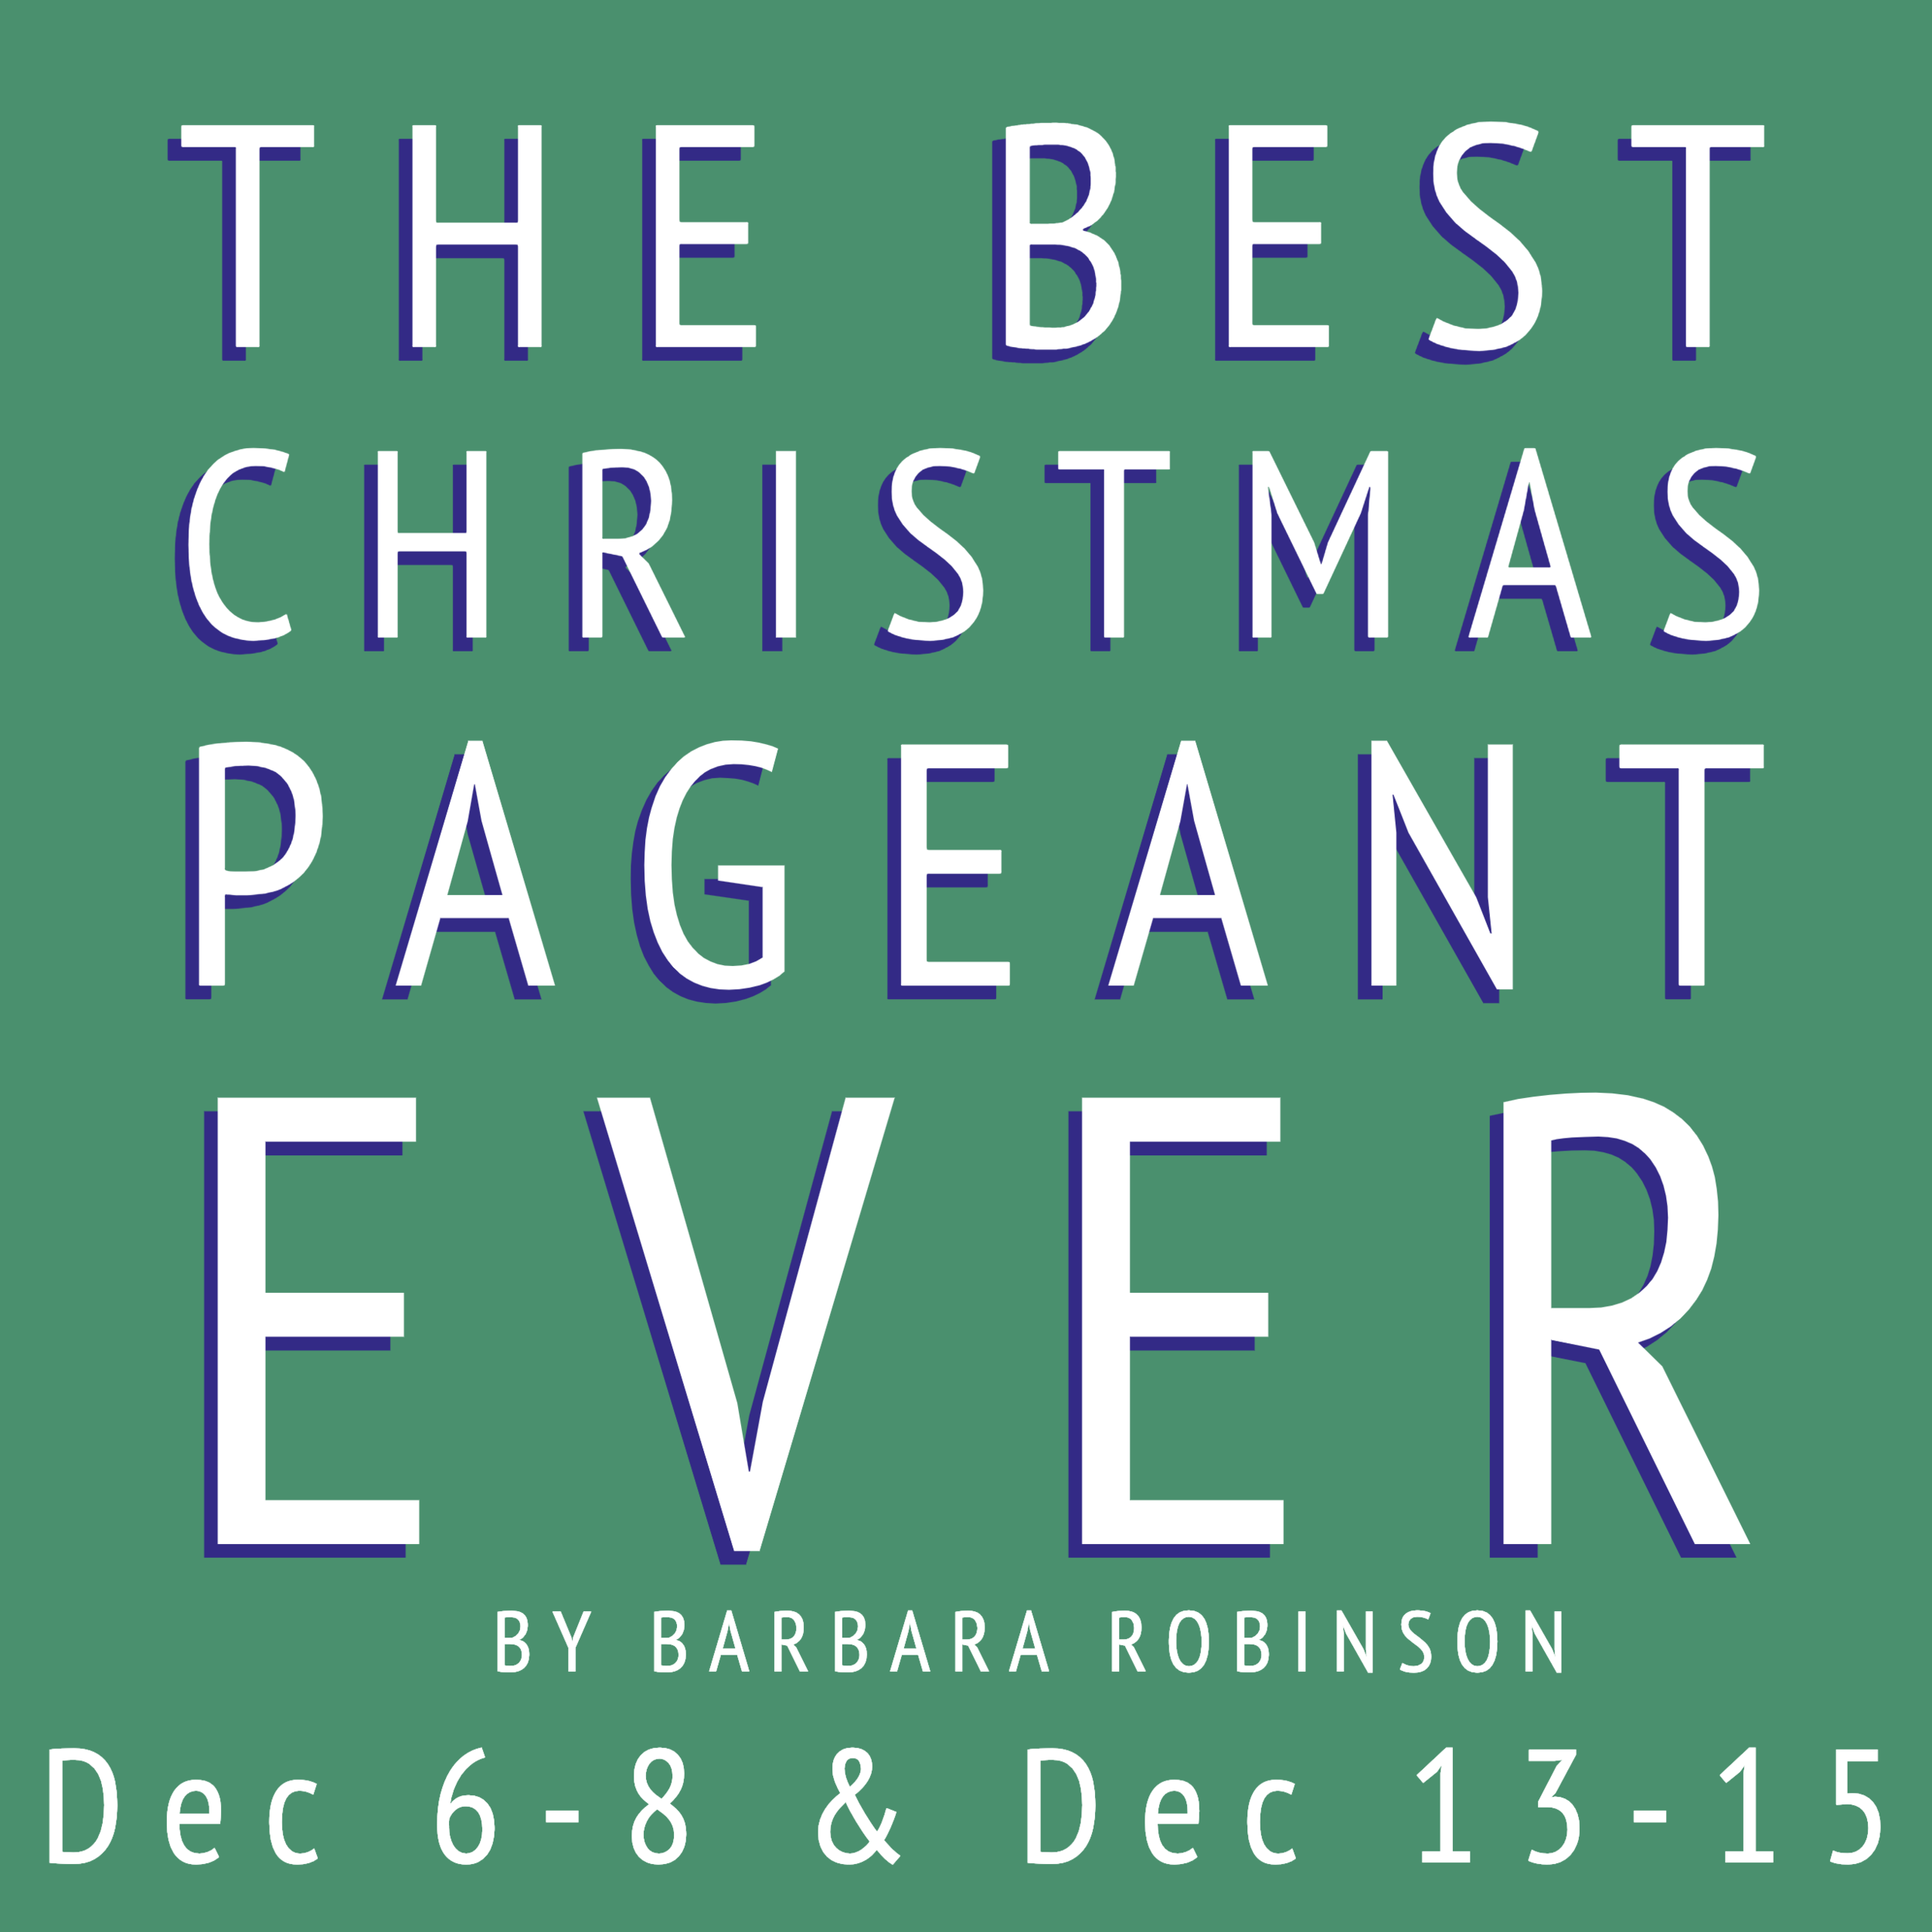 "DIRECTED BY GINGER HEATH - The Best Christmas Pageant Ever follows the outrageous shenanigans of the Herdman siblings, or ""the worst kids in the history of the world"" and the Bradley family who struggle to save the annual Christmas Pageant. The siblings take over the annual Christmas pageant in a hilarious yet heartwarming tale involving the Three Wise Men, a ham, scared shepherds, and six rowdy kids. Barbara Robinson wrote the book almost 50 years ago and it's still a heart-warming family holiday favorite."